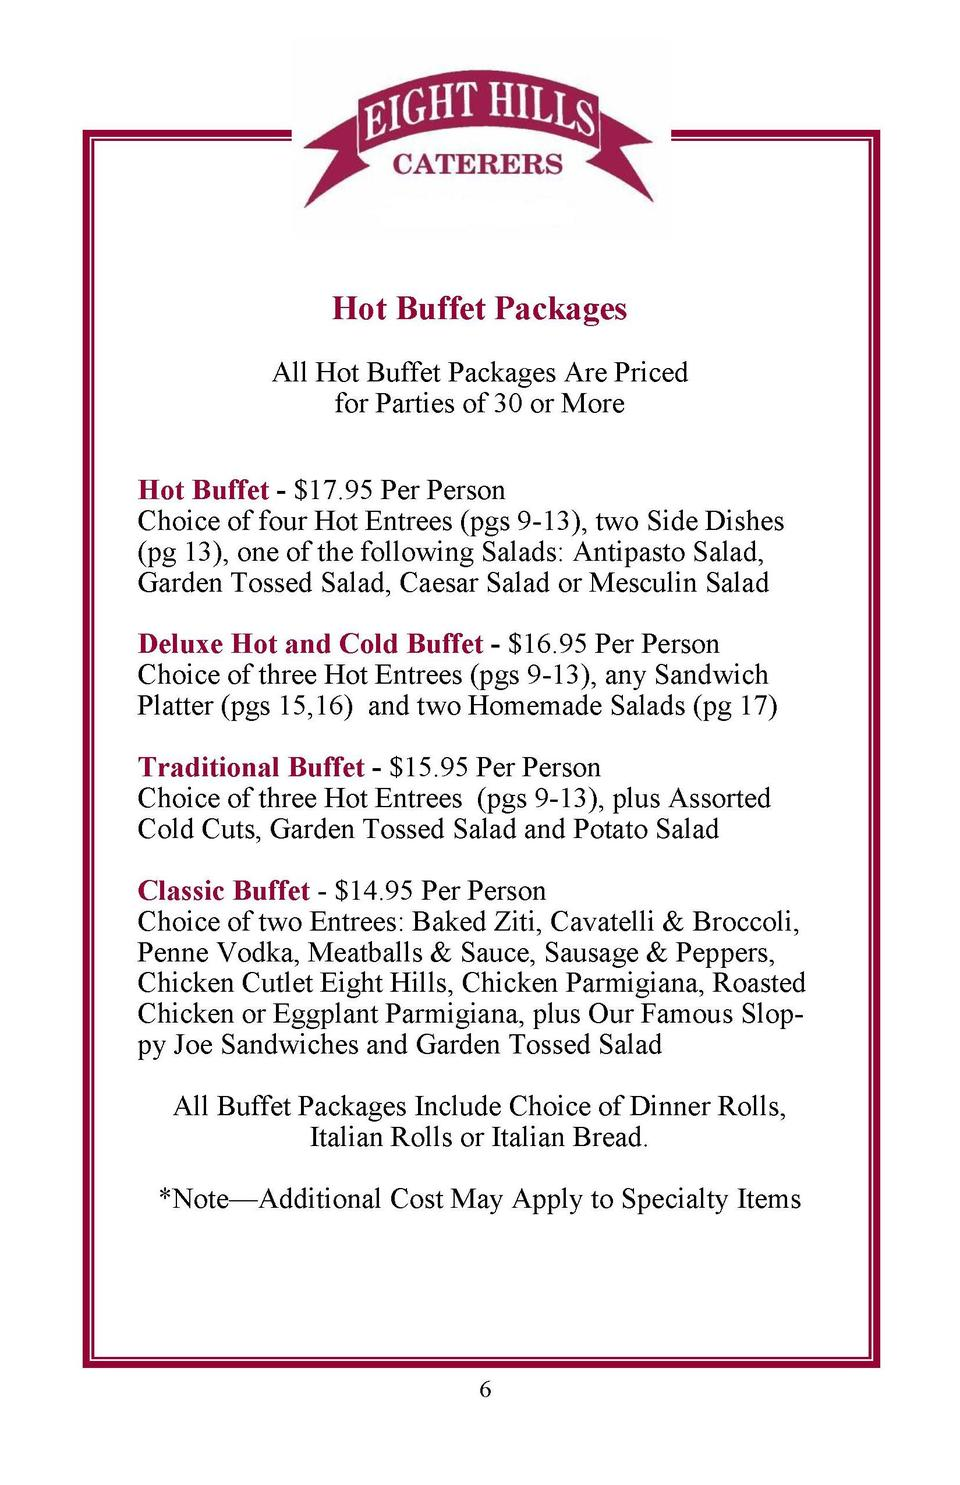 Salads Hot Buffet Packages  Small  Large  Garden Tossed Salad   25.00   40.00  Caesar Salad   25.00   40.00  Antipasto Sal...